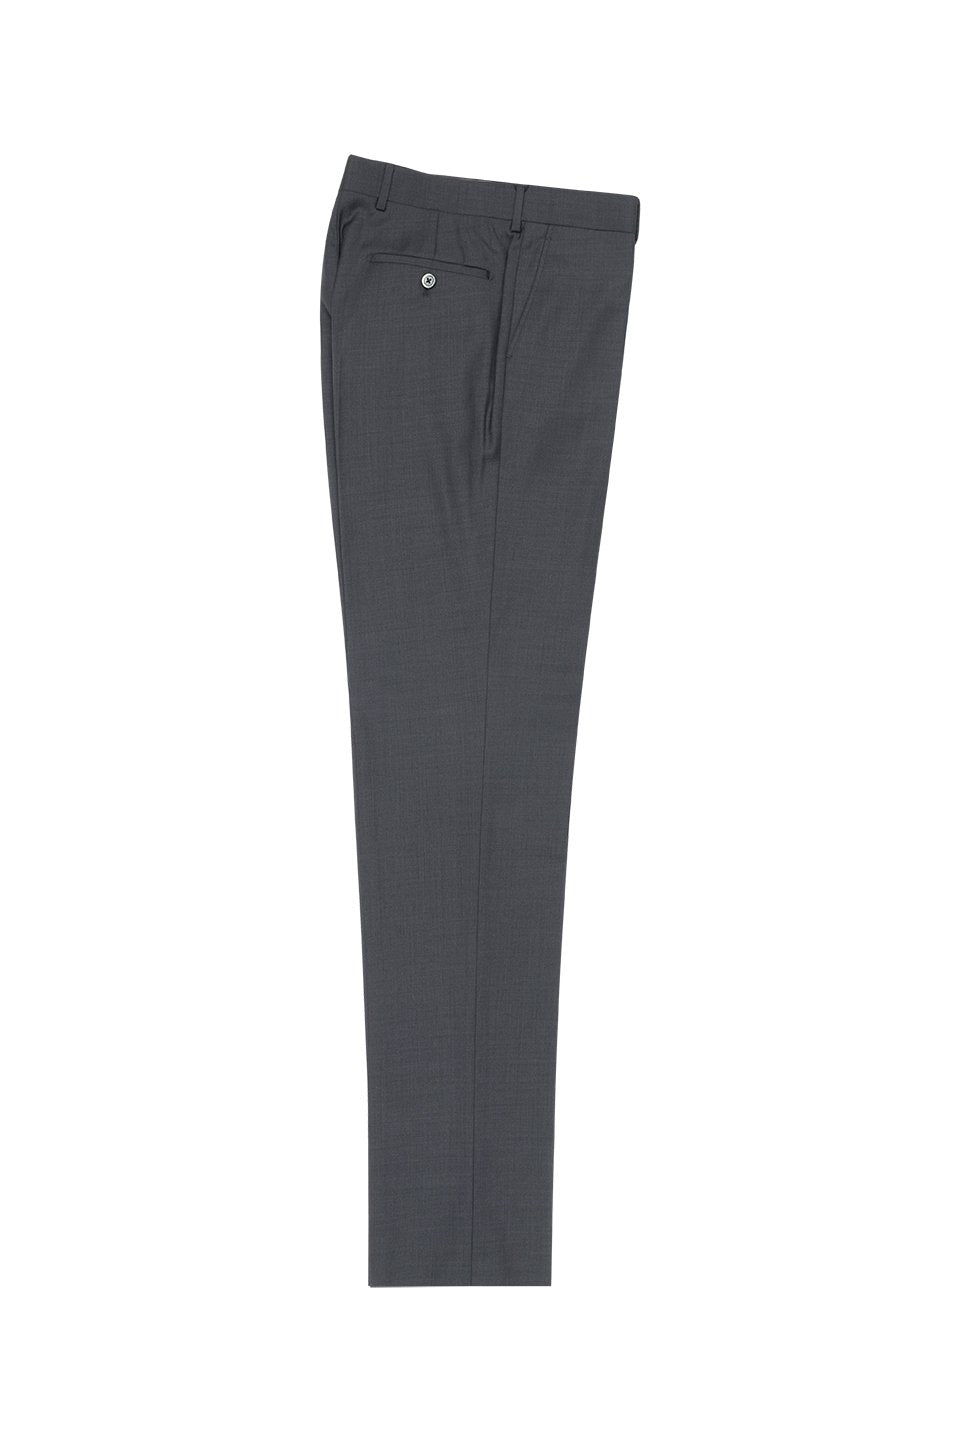 Tiglio Grey Solid Flat Front Slim Fit Dress Pants